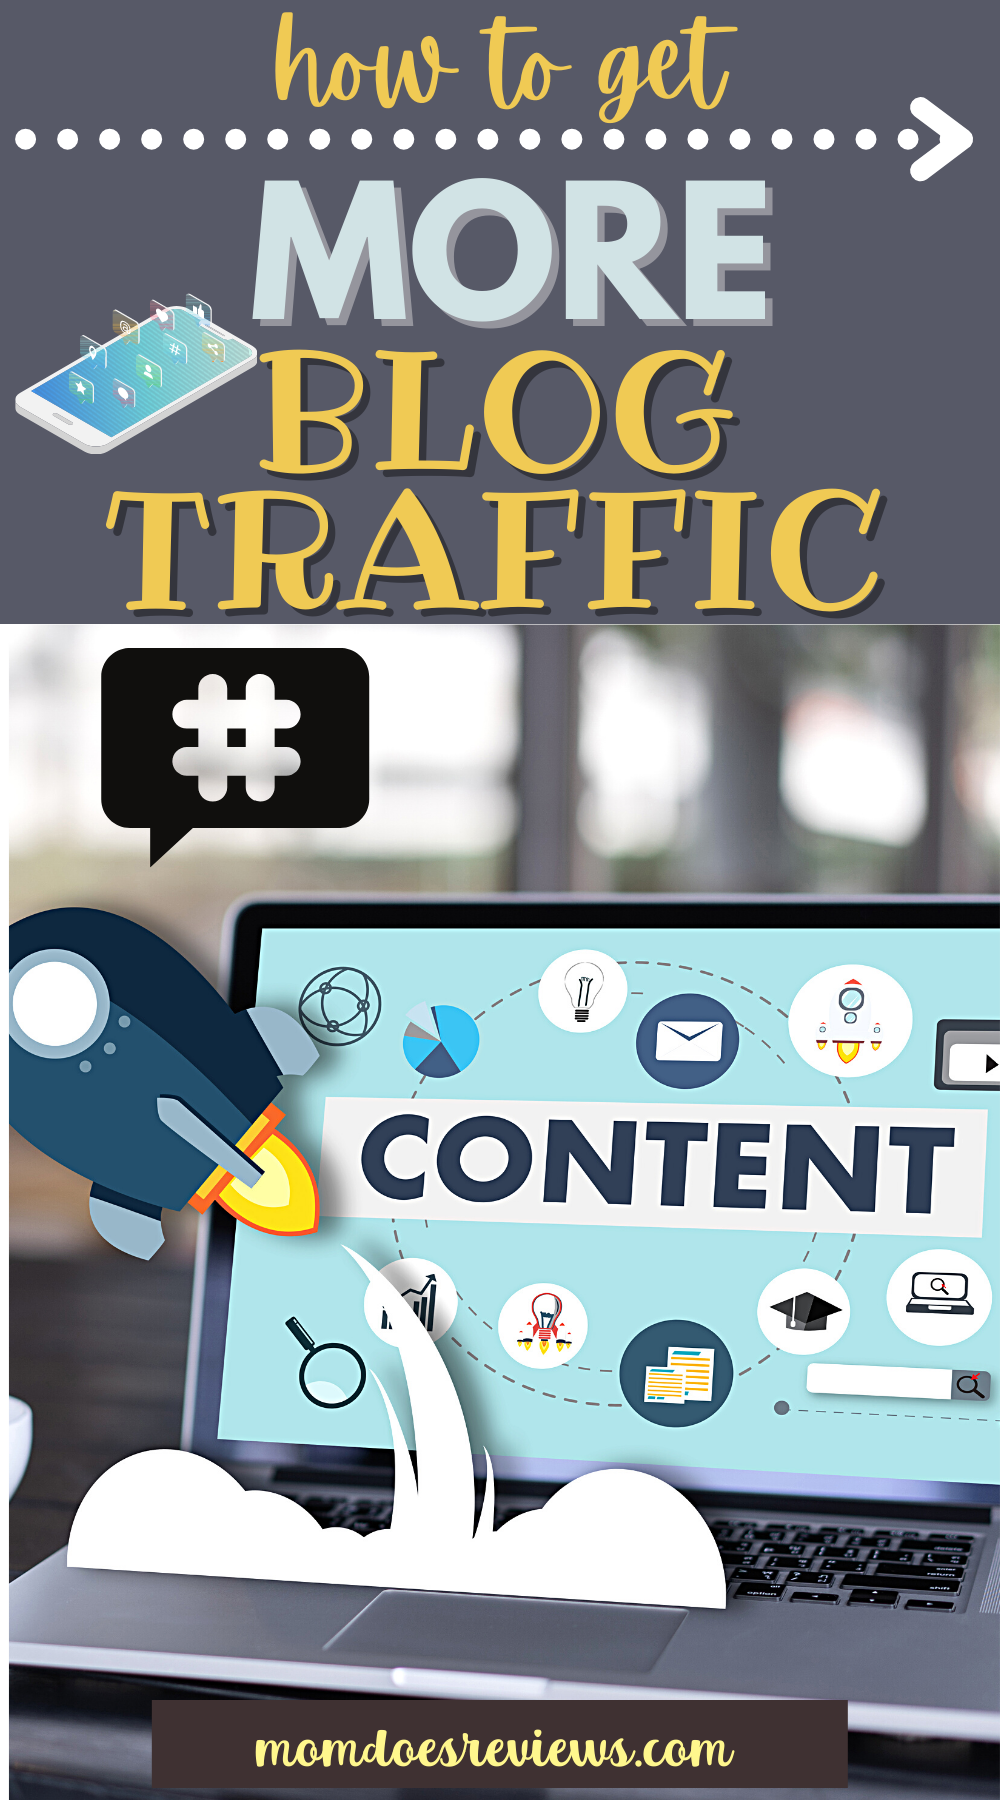 Easy Strategies to Get More Blog Traffic